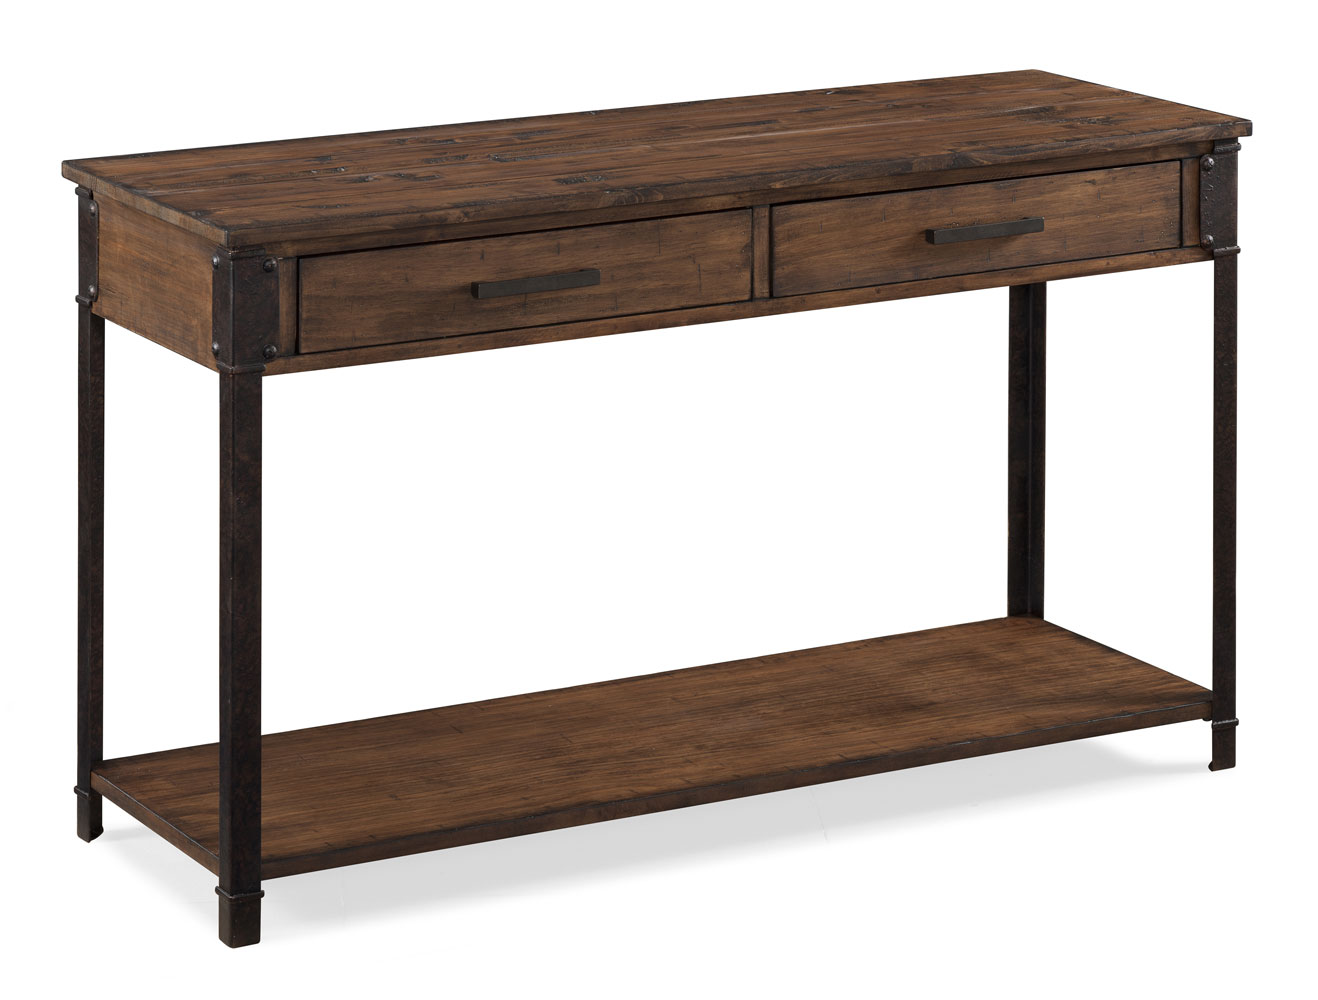 Larkin Rectangular Sofa Table Natural Pine T2017 73  : larkin rectangular sofa table natural pine 1 from www.decorsouth.com size 1318 x 1000 jpeg 116kB